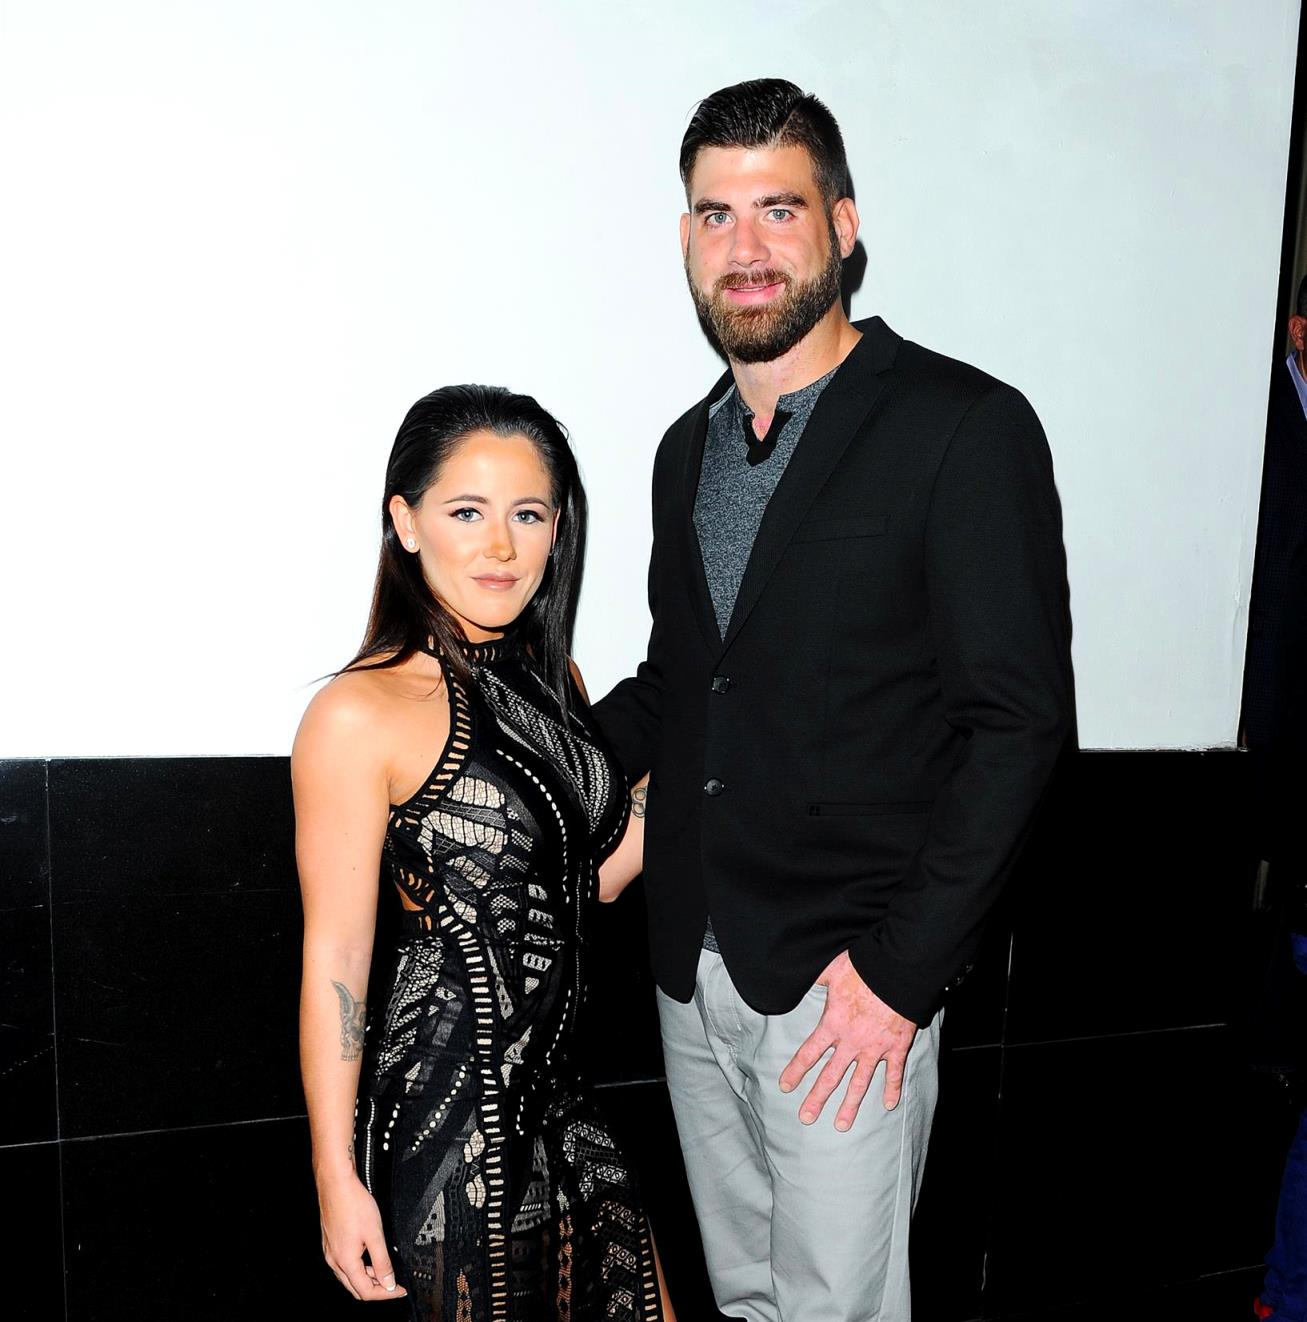 Ex Teen Mom 2 Star Jenelle Evans Was the One Who Called 911 After Husband David Eason Killed Dog, She Issues New Statement After Losing Custody